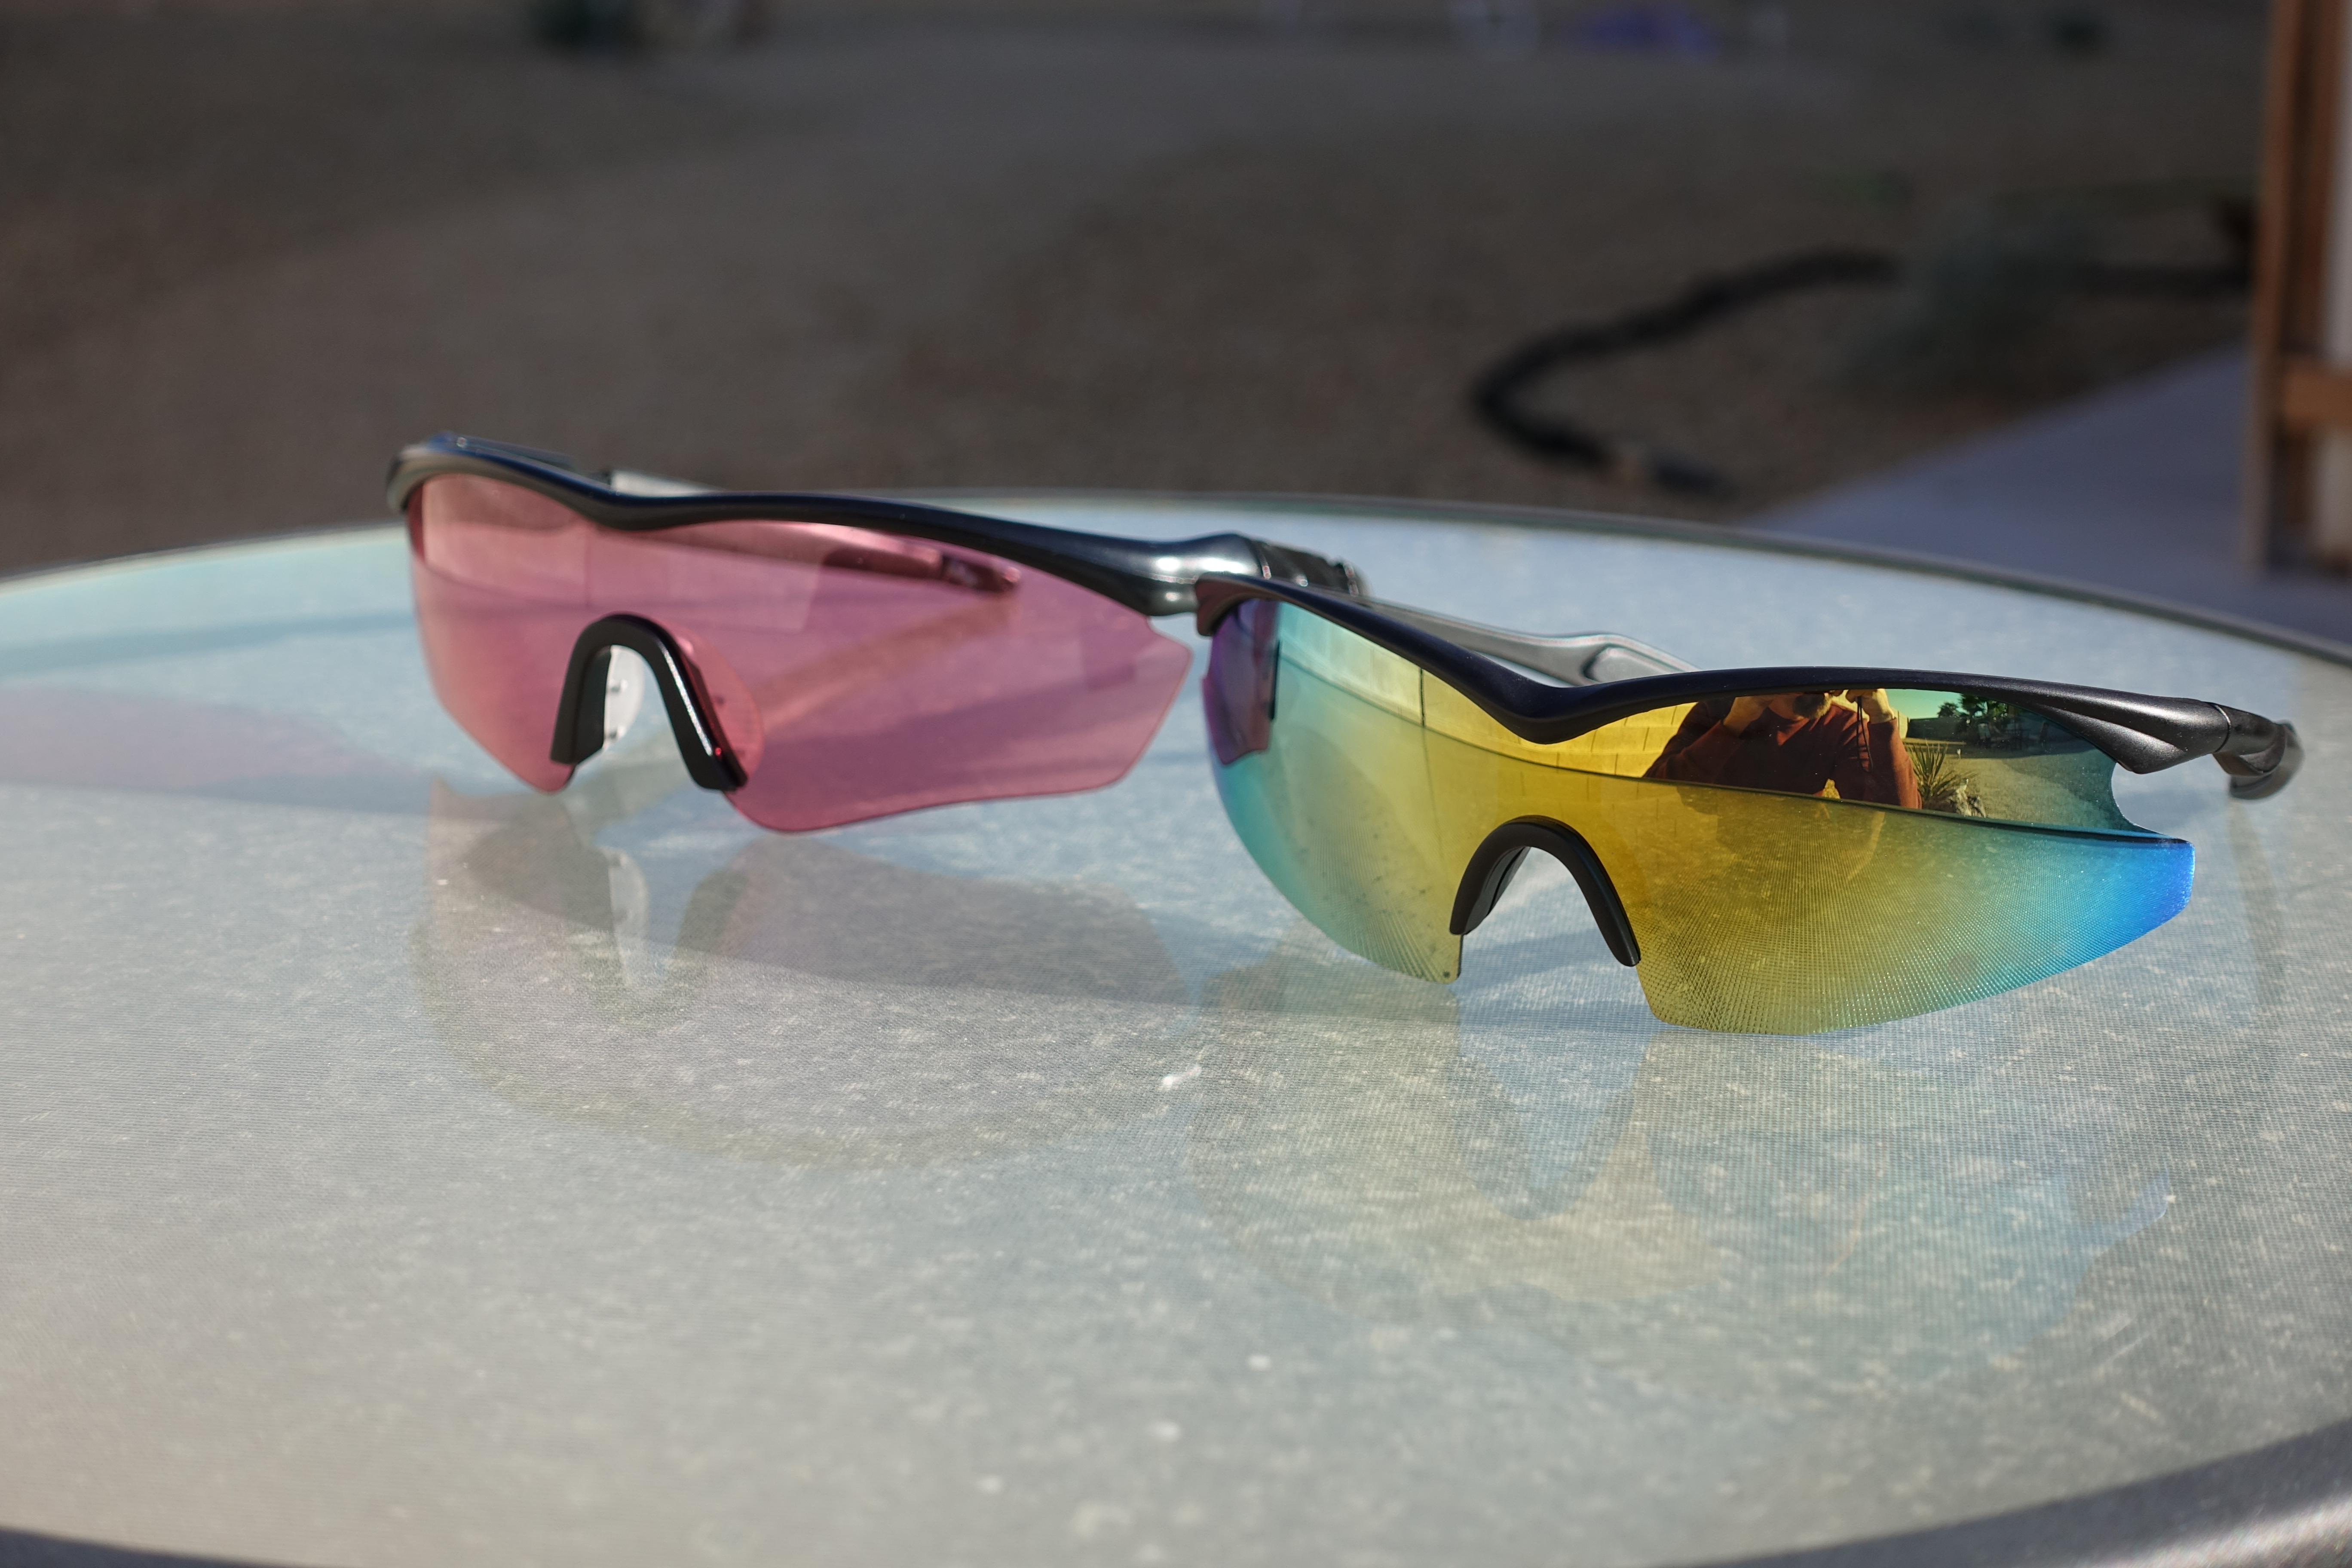 a82a11b2f6 Tac Glasses Review Part 2  One Month Later - Accroya